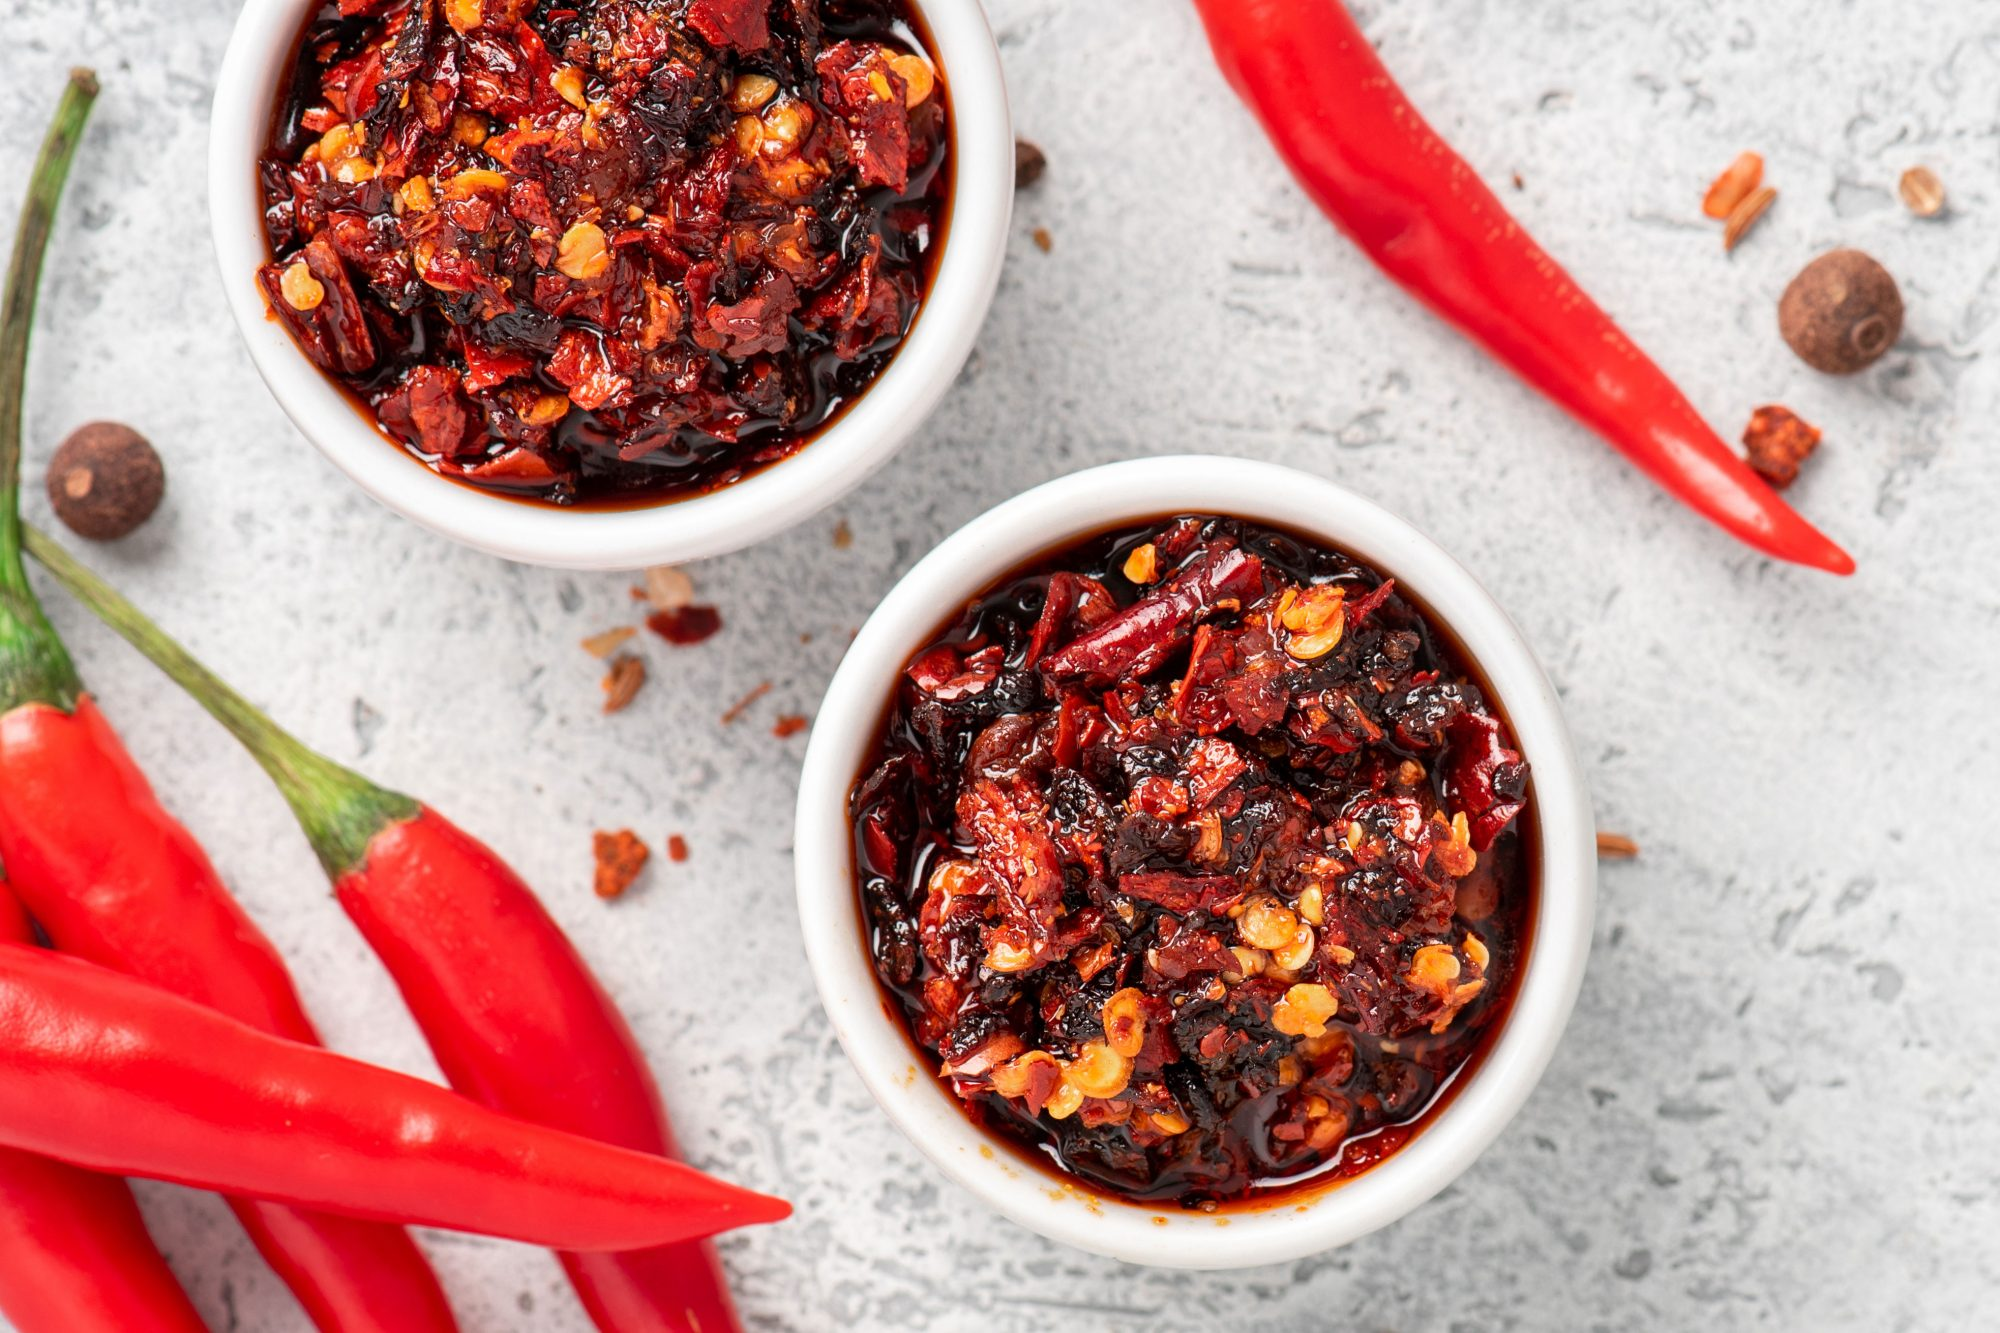 homemade chili oil in small container